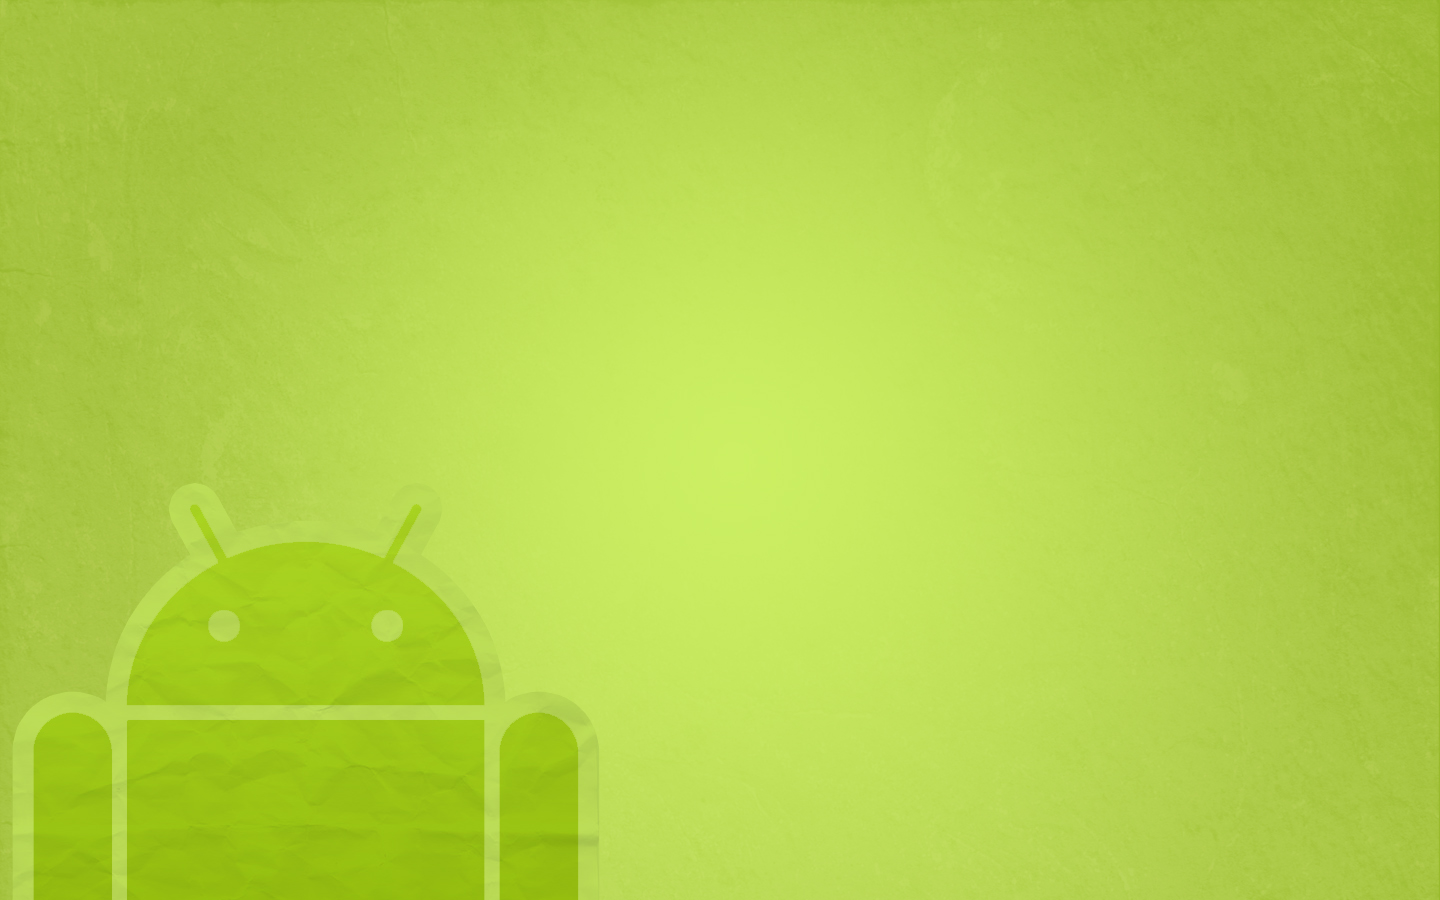 Wallpapers For Android: Latest Best Wallpapers 2011